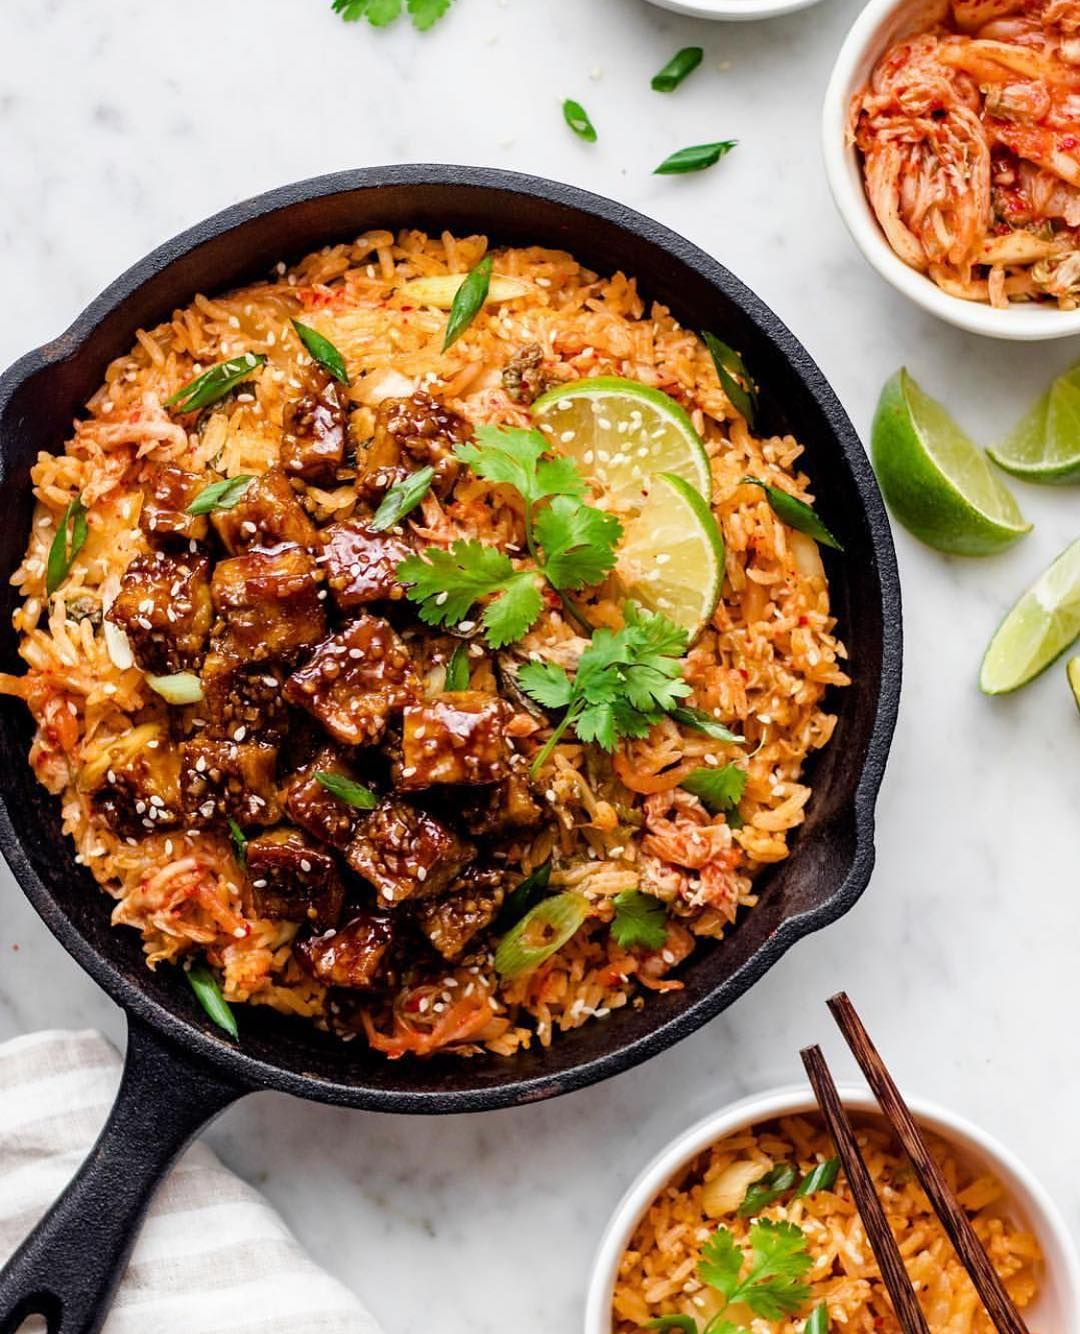 Vegan Recipes On Instagram Kimchi Sriracha Fried Rice With